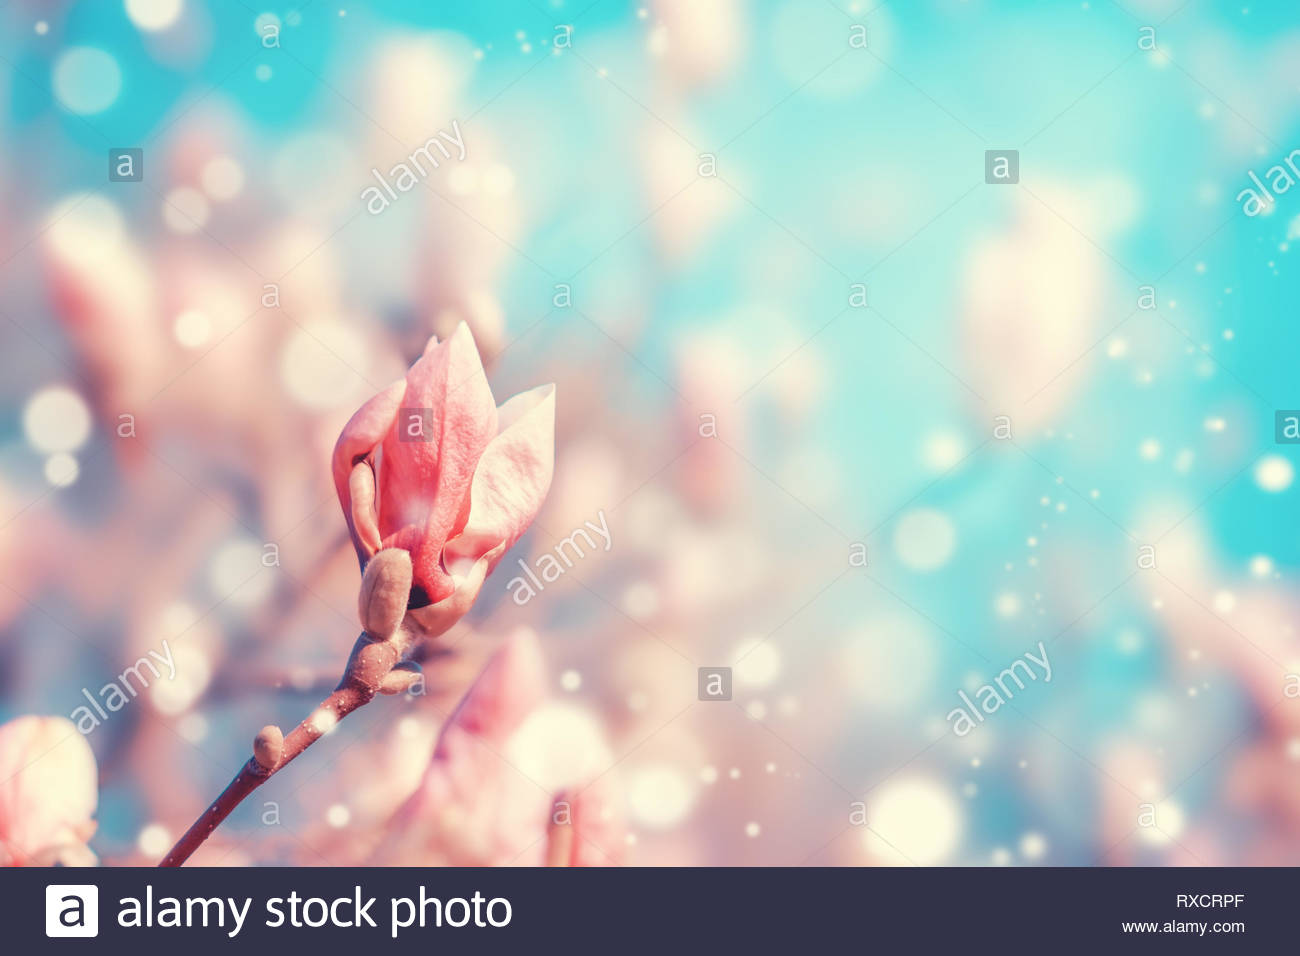 Pink magnolia tree flowers bud in spring. Nature floral blossoming background with glitters and copy space. Pastel pink and blue colors. - Stock Image